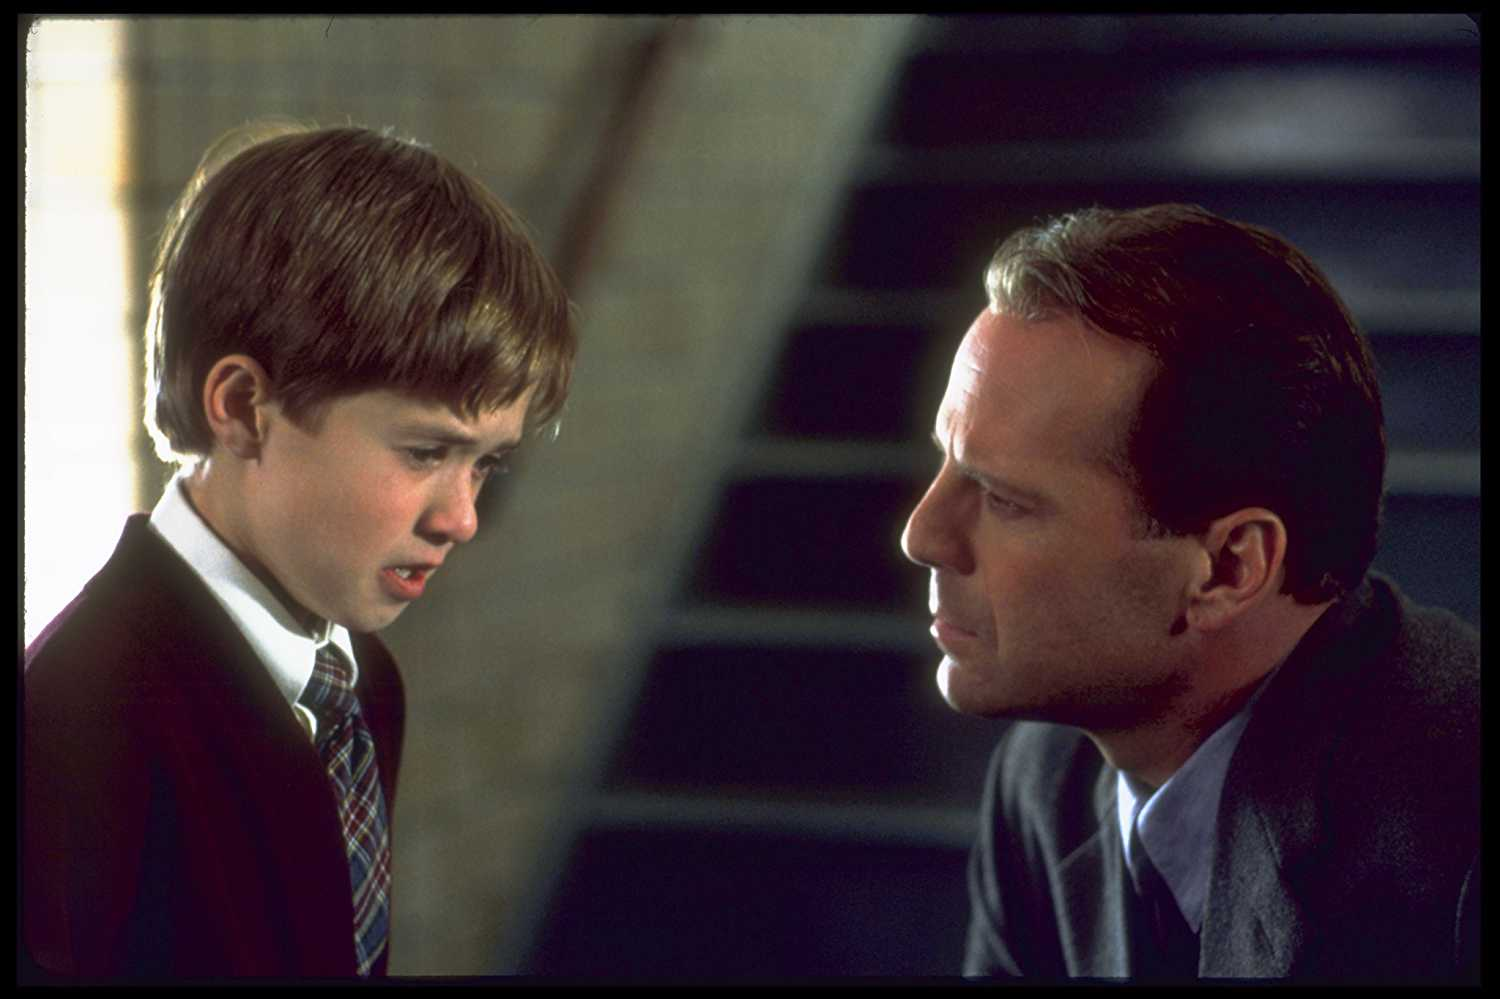 'The Sixth Sense' (1999) introduced Shyamalan as a master storyteller. (IMDb)